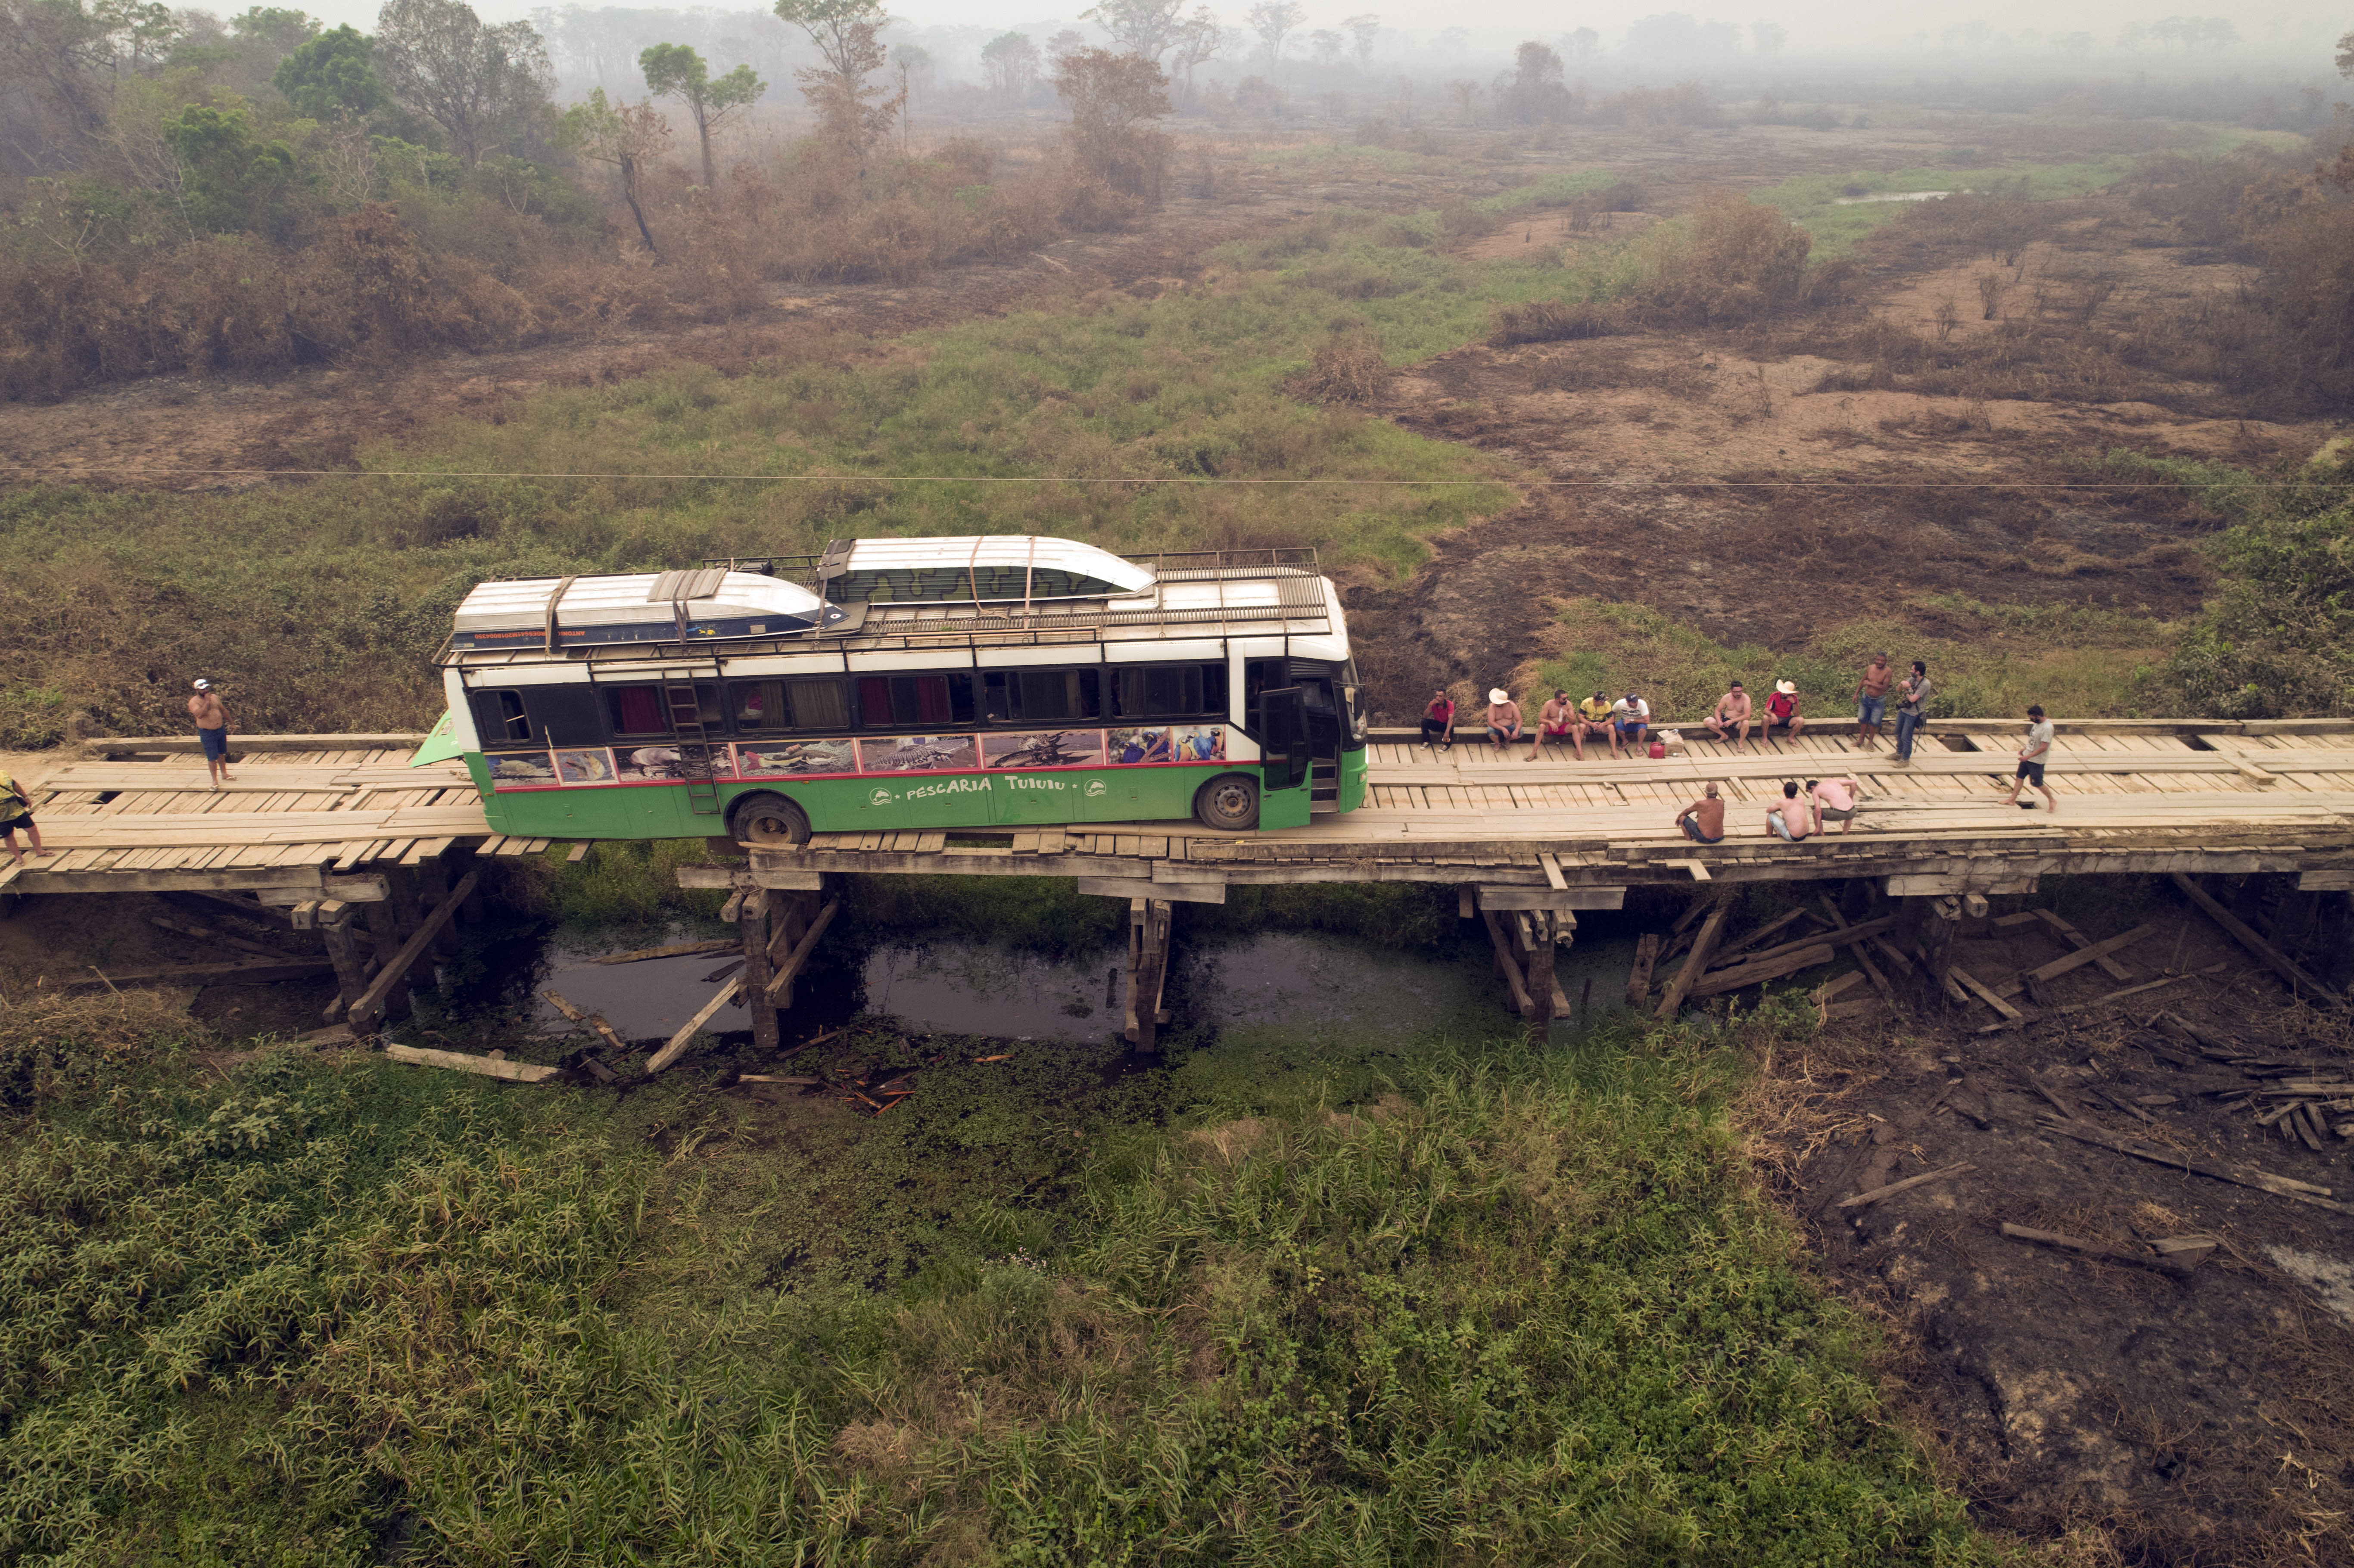 Tourists sit on a bridge railing after their sports fishing tour bus became stuck on a bridge damaged by wildfires, on the Trans-Pantanal highway in the Pantanal wetlands near Pocone, Mato Grosso state, Brazil, Friday, Sept. 11, 2020. Both sides of the highway usually feature pools of water, even in its dry season. (AP Photo/Andre Penner)